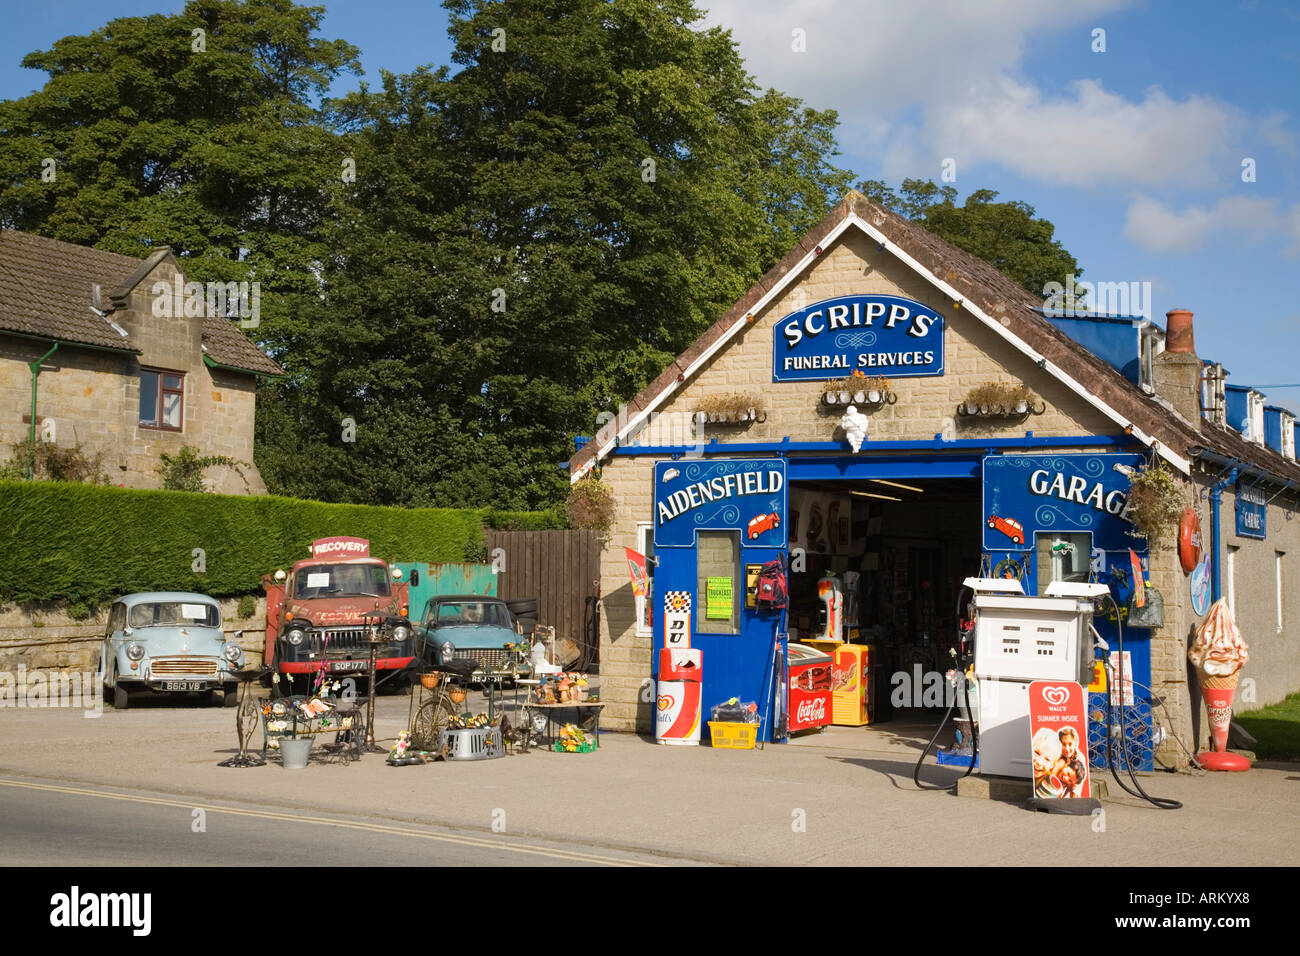 Aidensfield Village Garage And Scripps Funeral Services Setting For